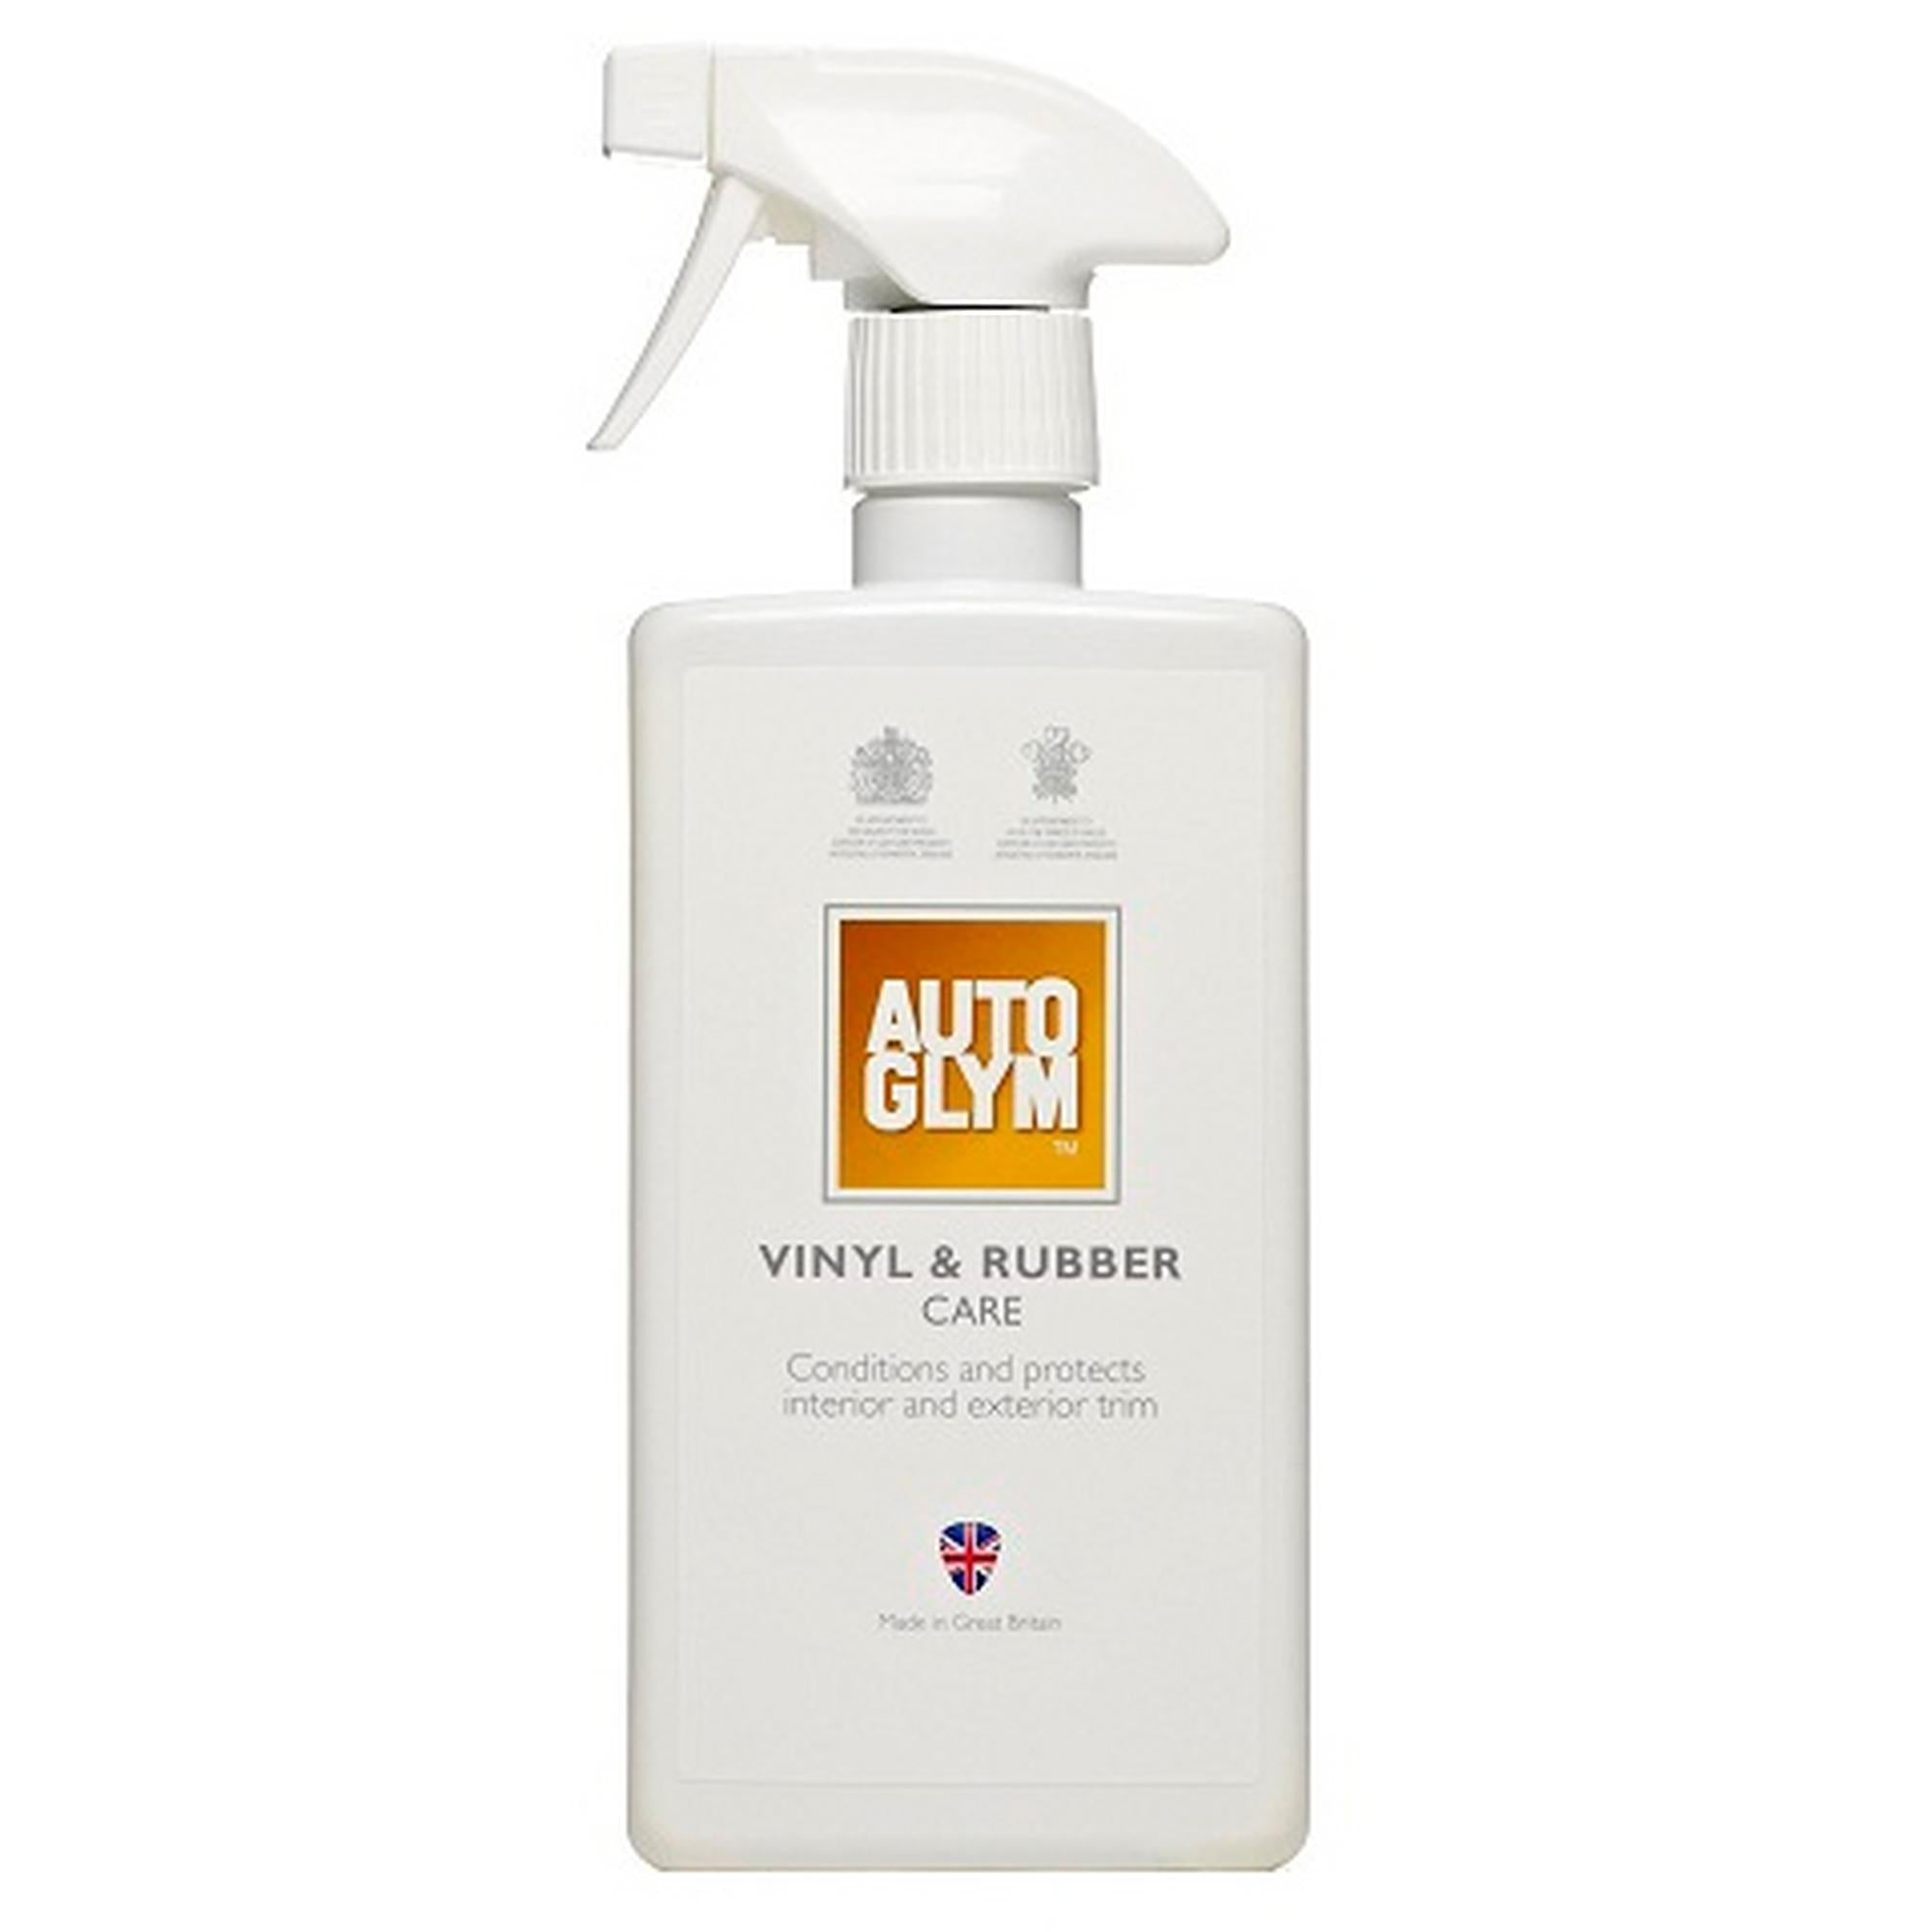 Autoglym Vinyl & Rubber Care 500ml